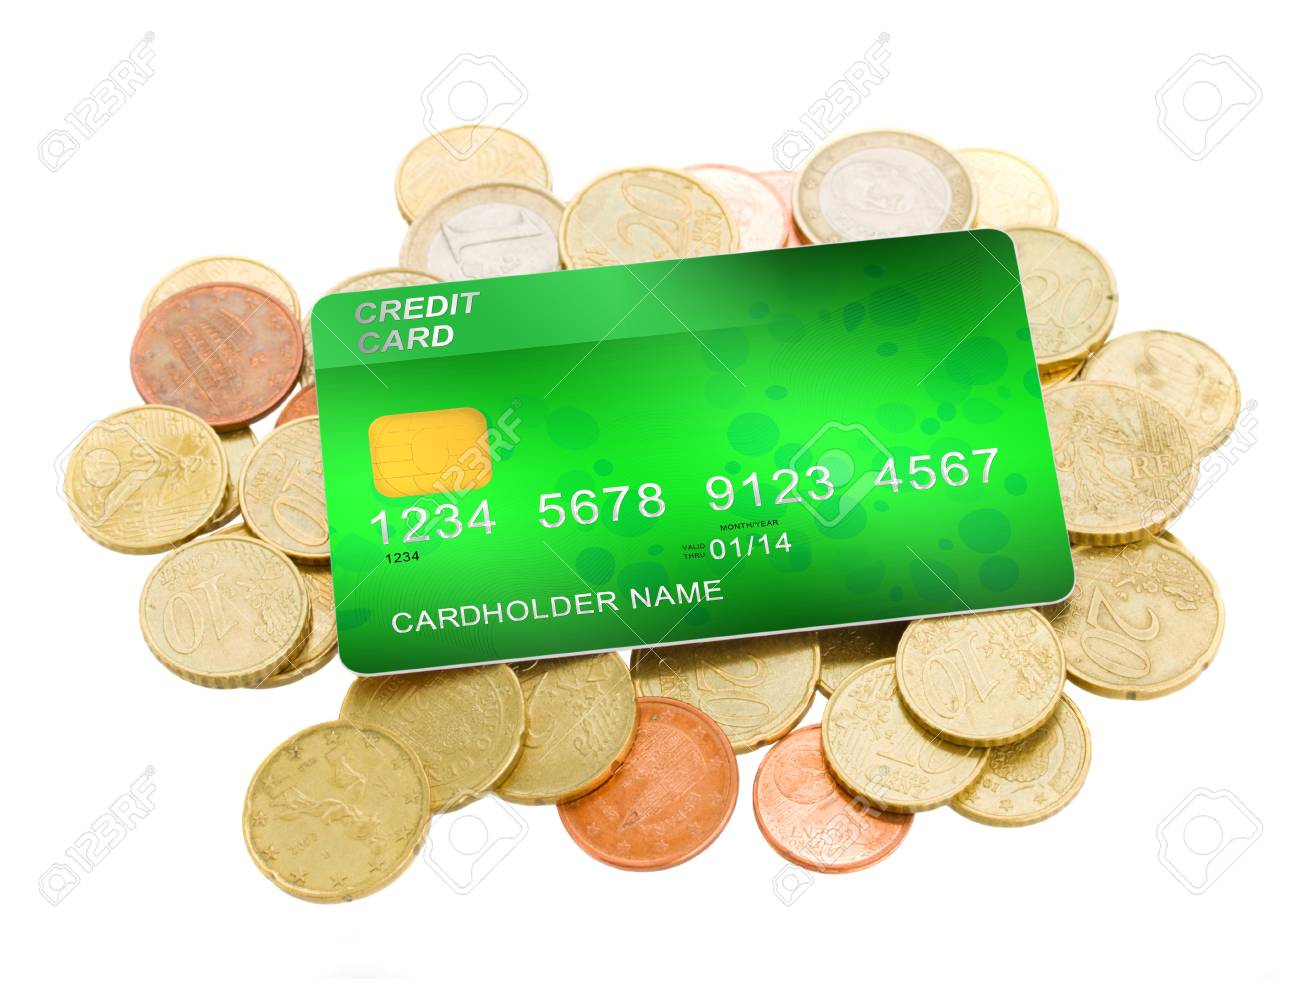 credit card on pile of euro coins isolated on white background Stock Photo - 18462616